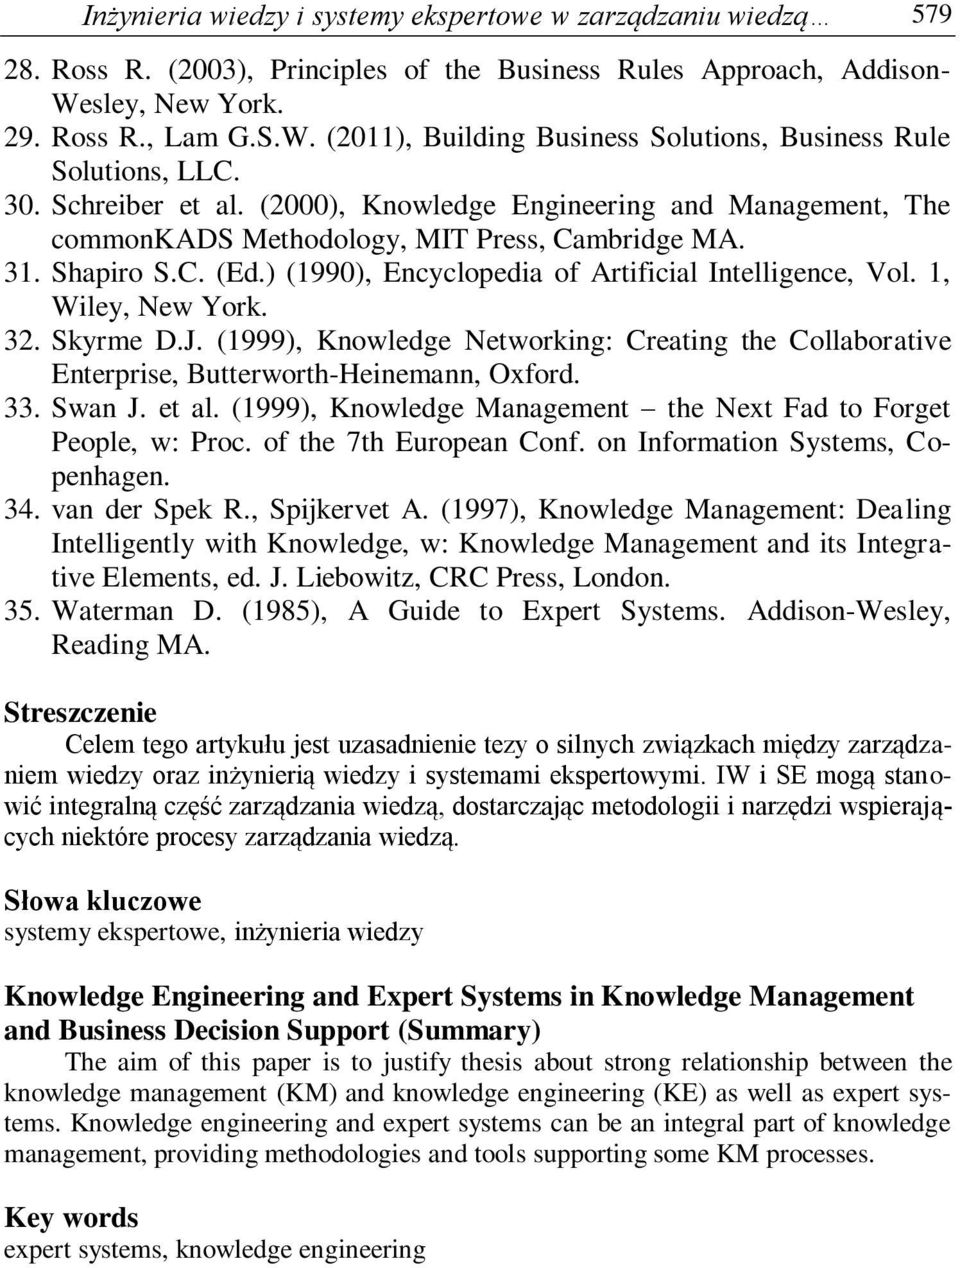 (2000), Knowledge Engineering and Management, The commonkads Methodology, MIT Press, Cambridge MA. 31. Shapiro S.C. (Ed.) (1990), Encyclopedia of Artificial Intelligence, Vol. 1, Wiley, New York. 32.